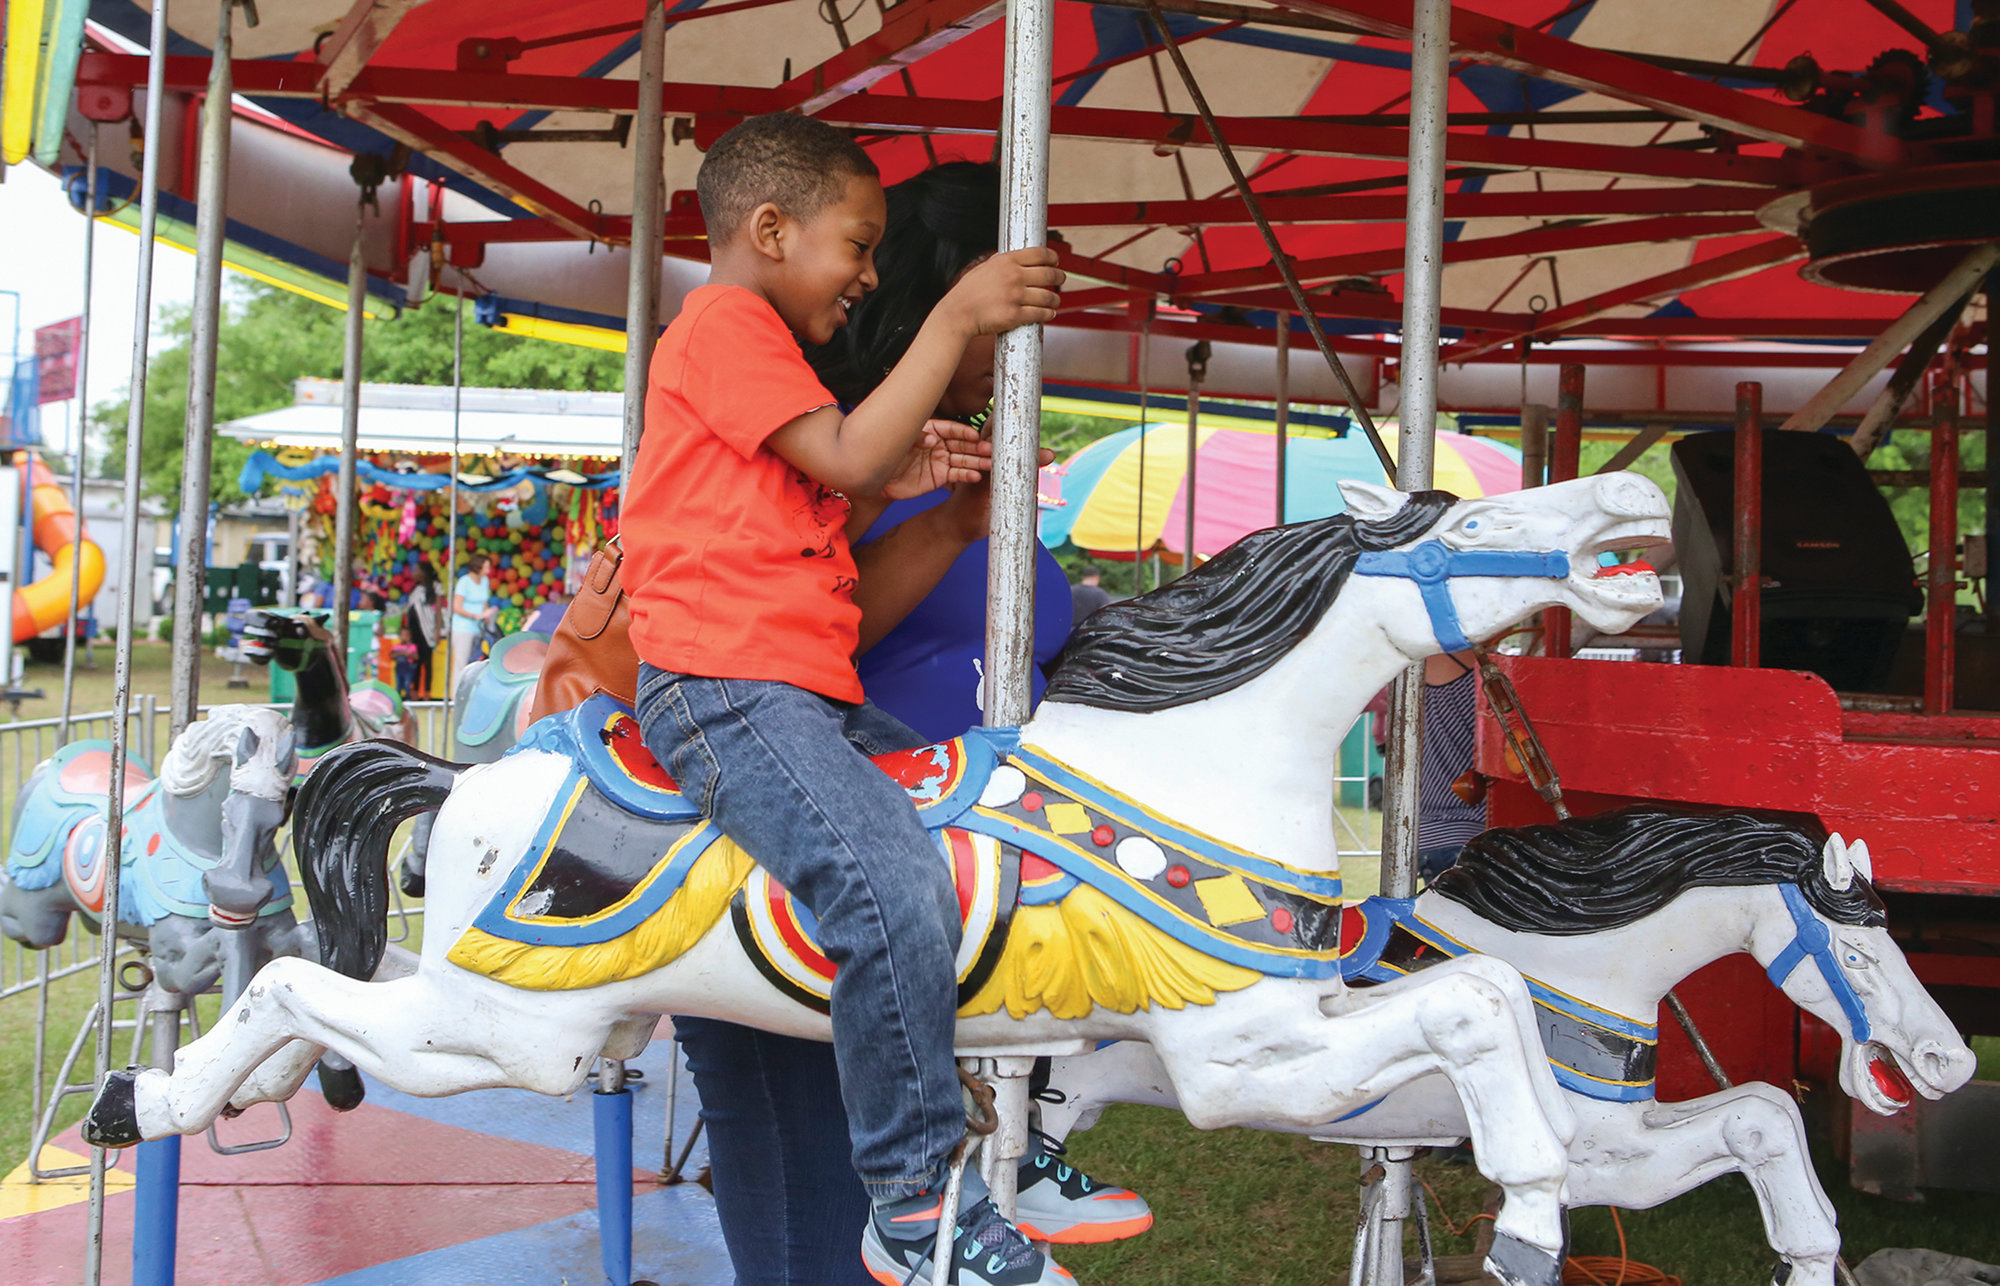 Gavriel Lasane,4, rides the Merry Go Round during the Puddin Swamp Festival on Saturday. (Keith Gedamke/The Item)